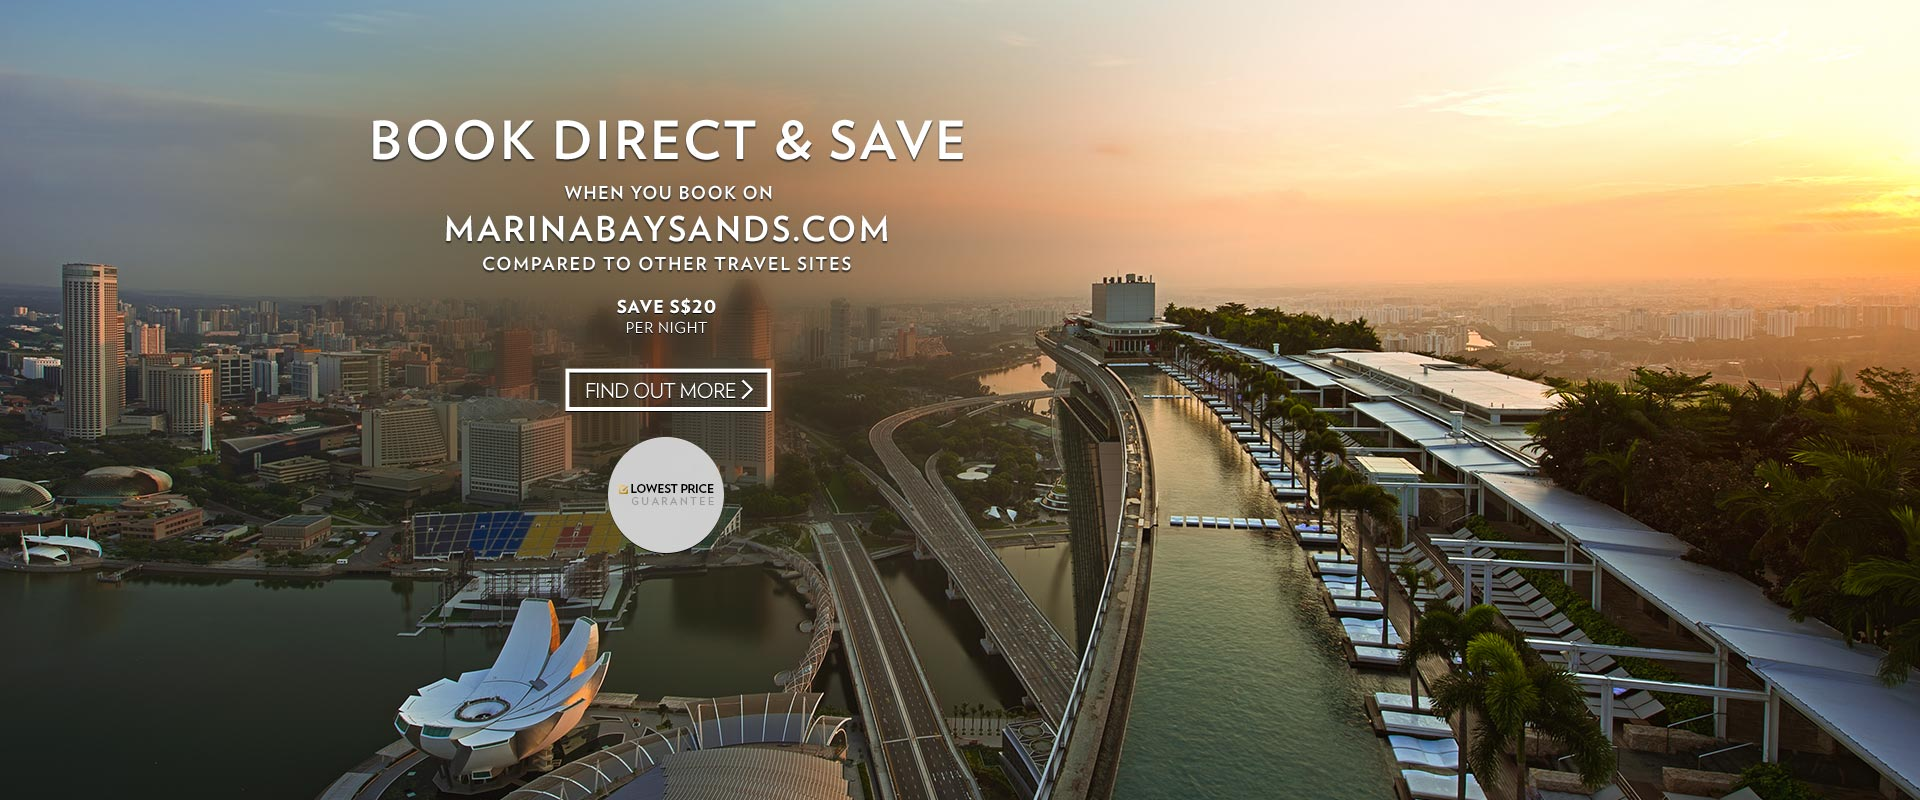 Always Save when Booking direct with Marina Bay Sands